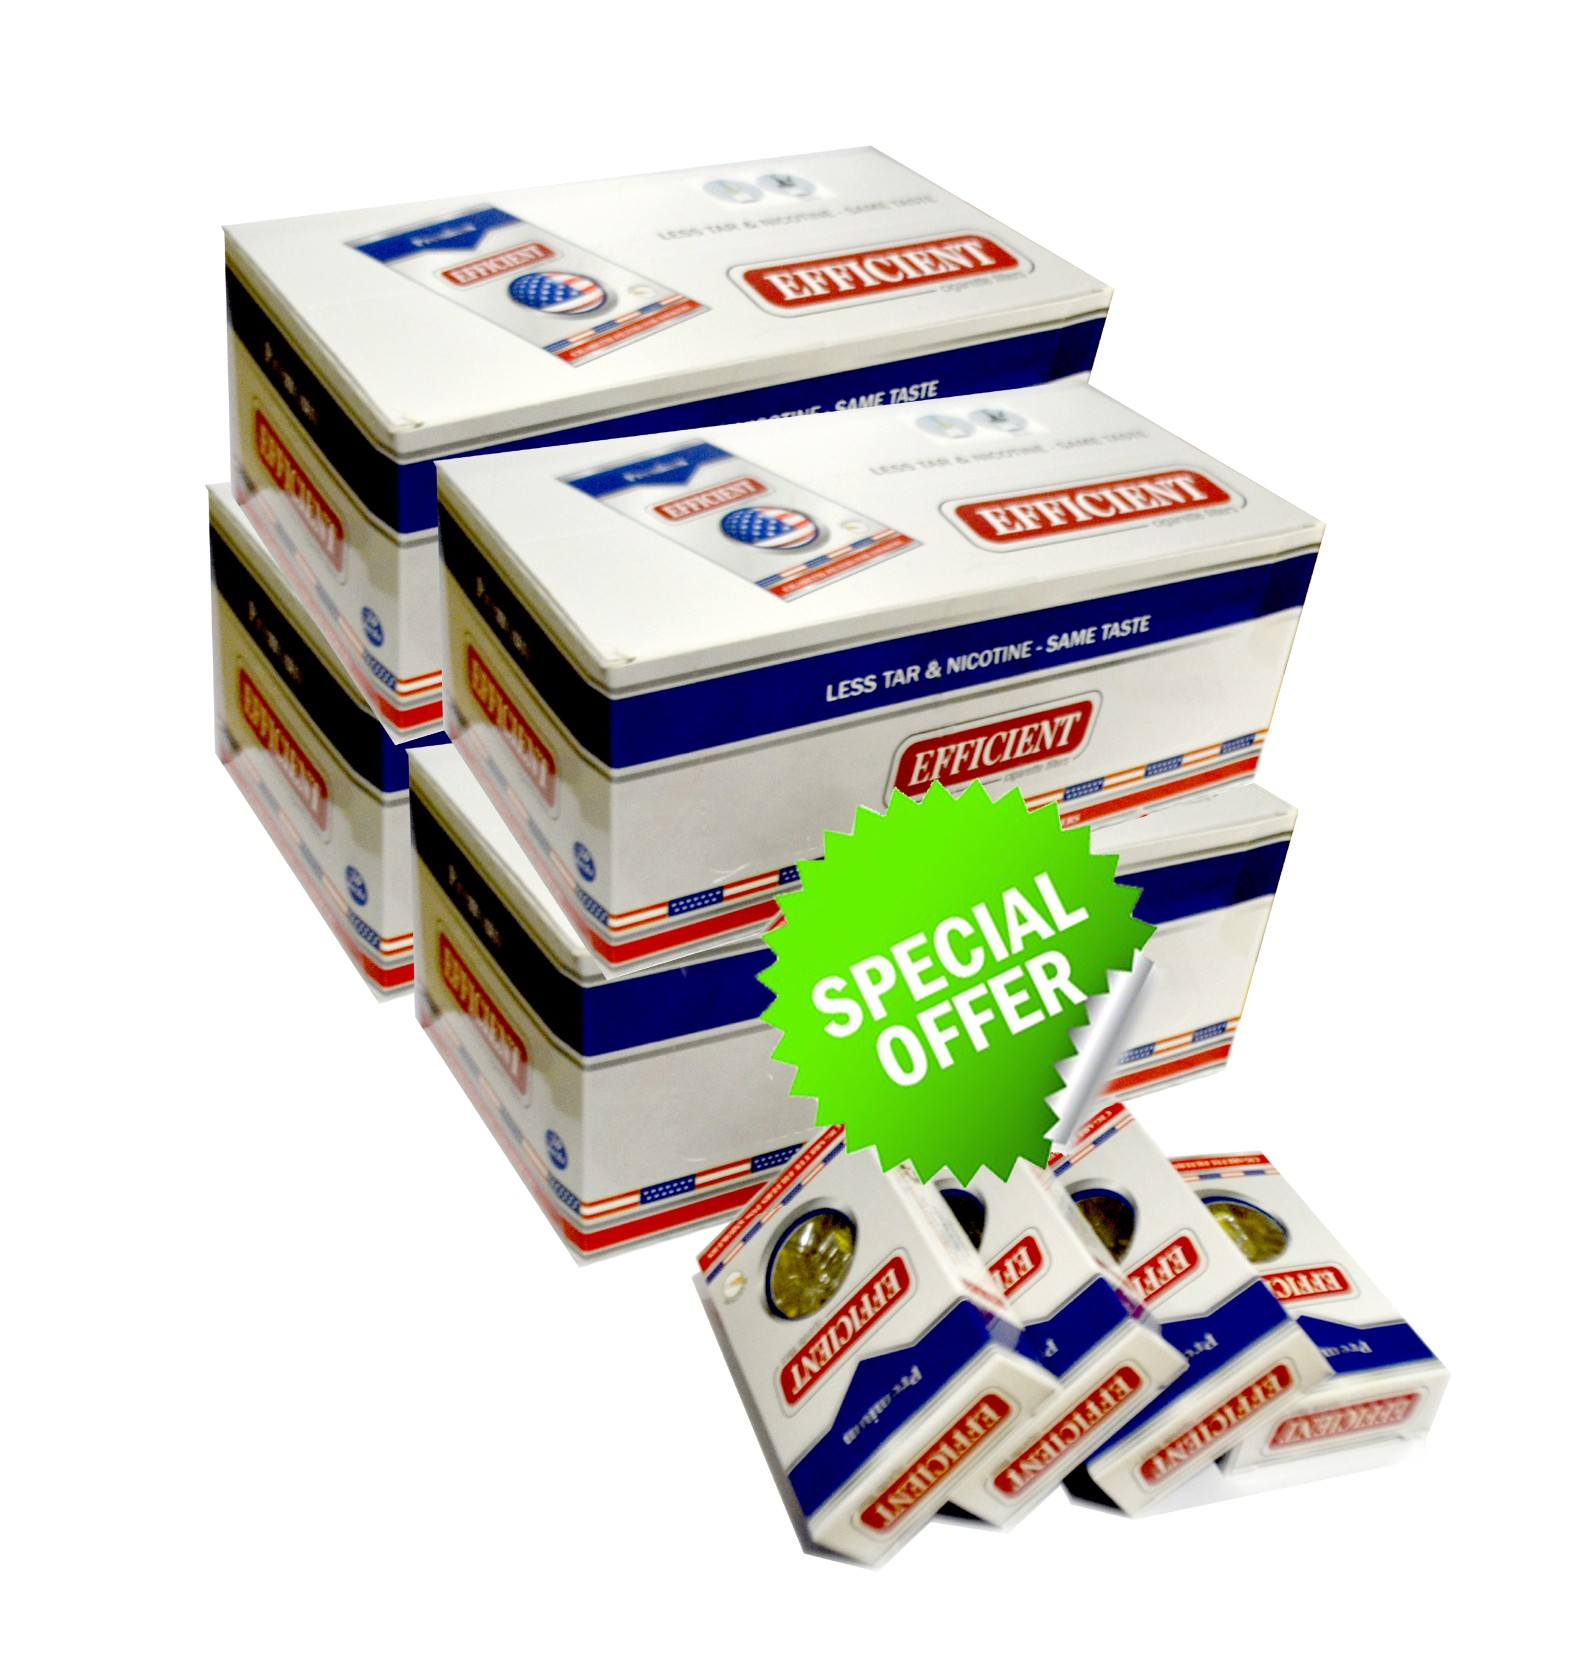 Efficient Cigarette Filters 80 packs Wholesale Special Offer (2400 filters)